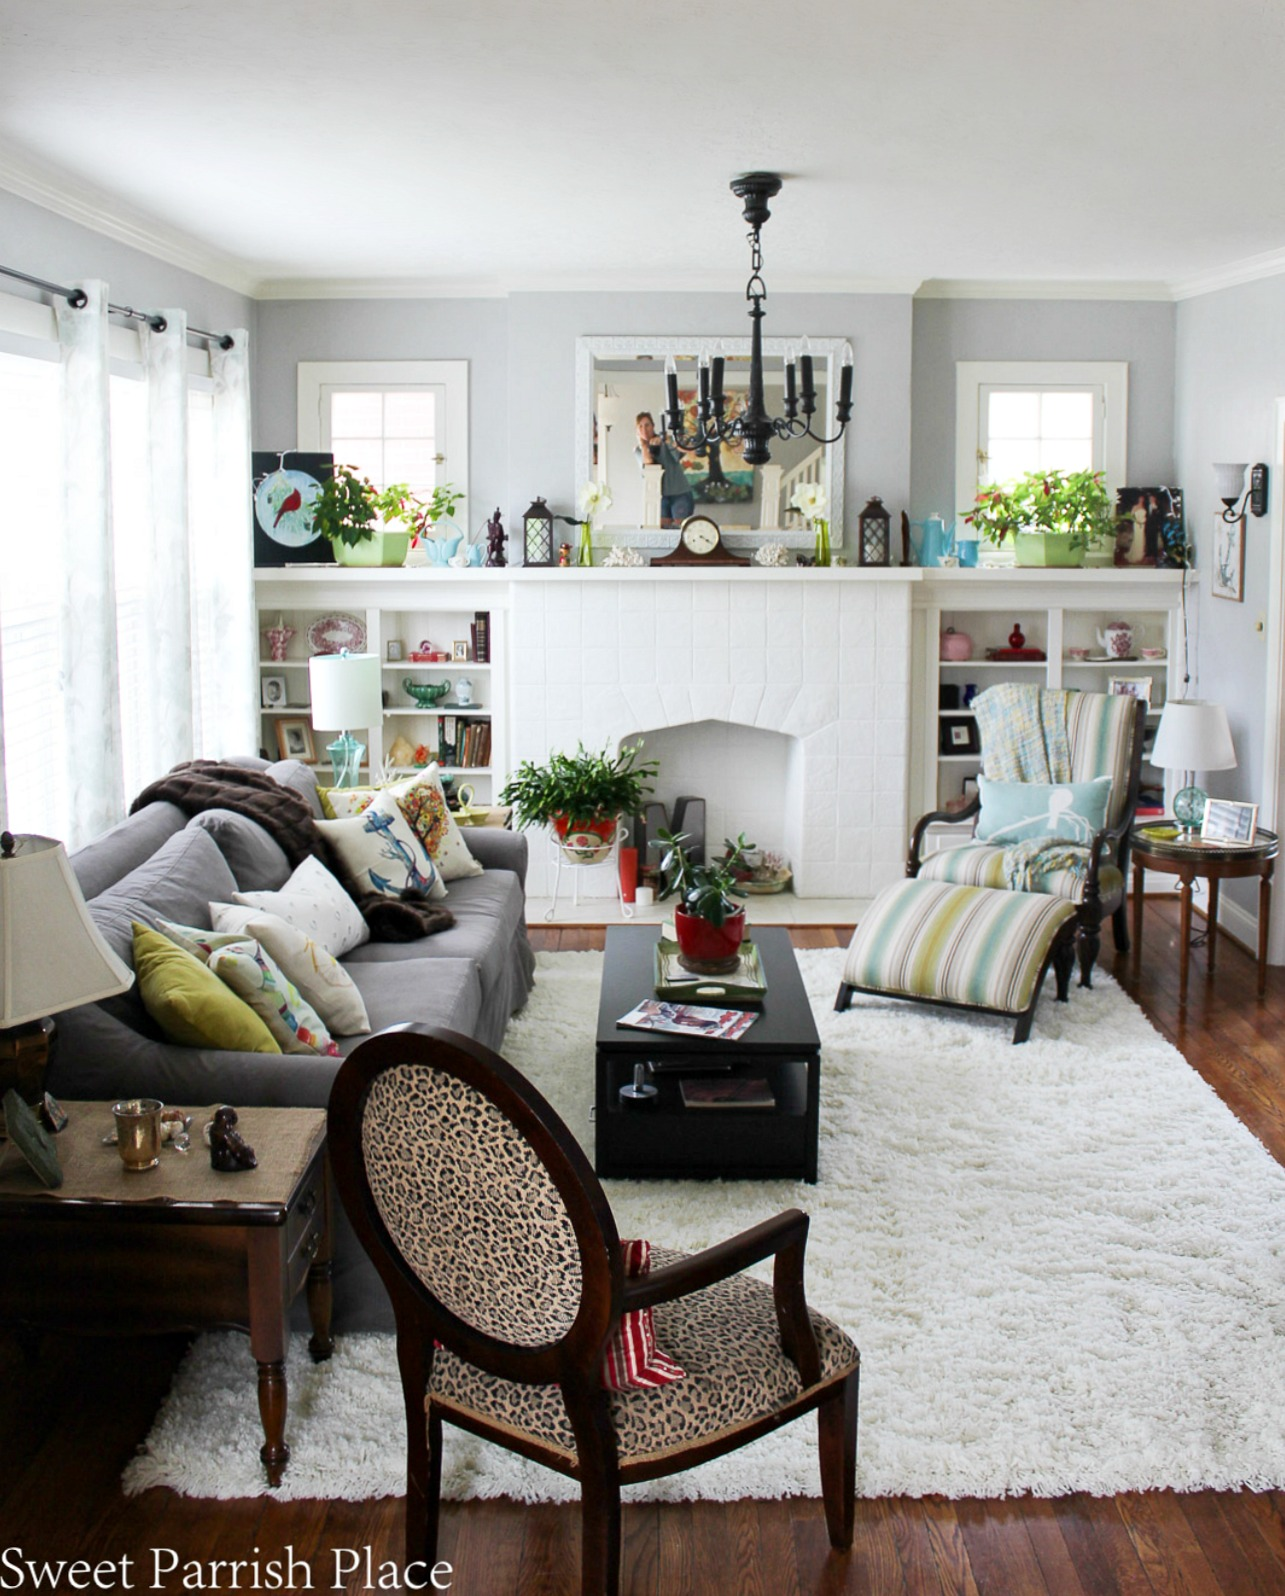 97 year old home tour-living room